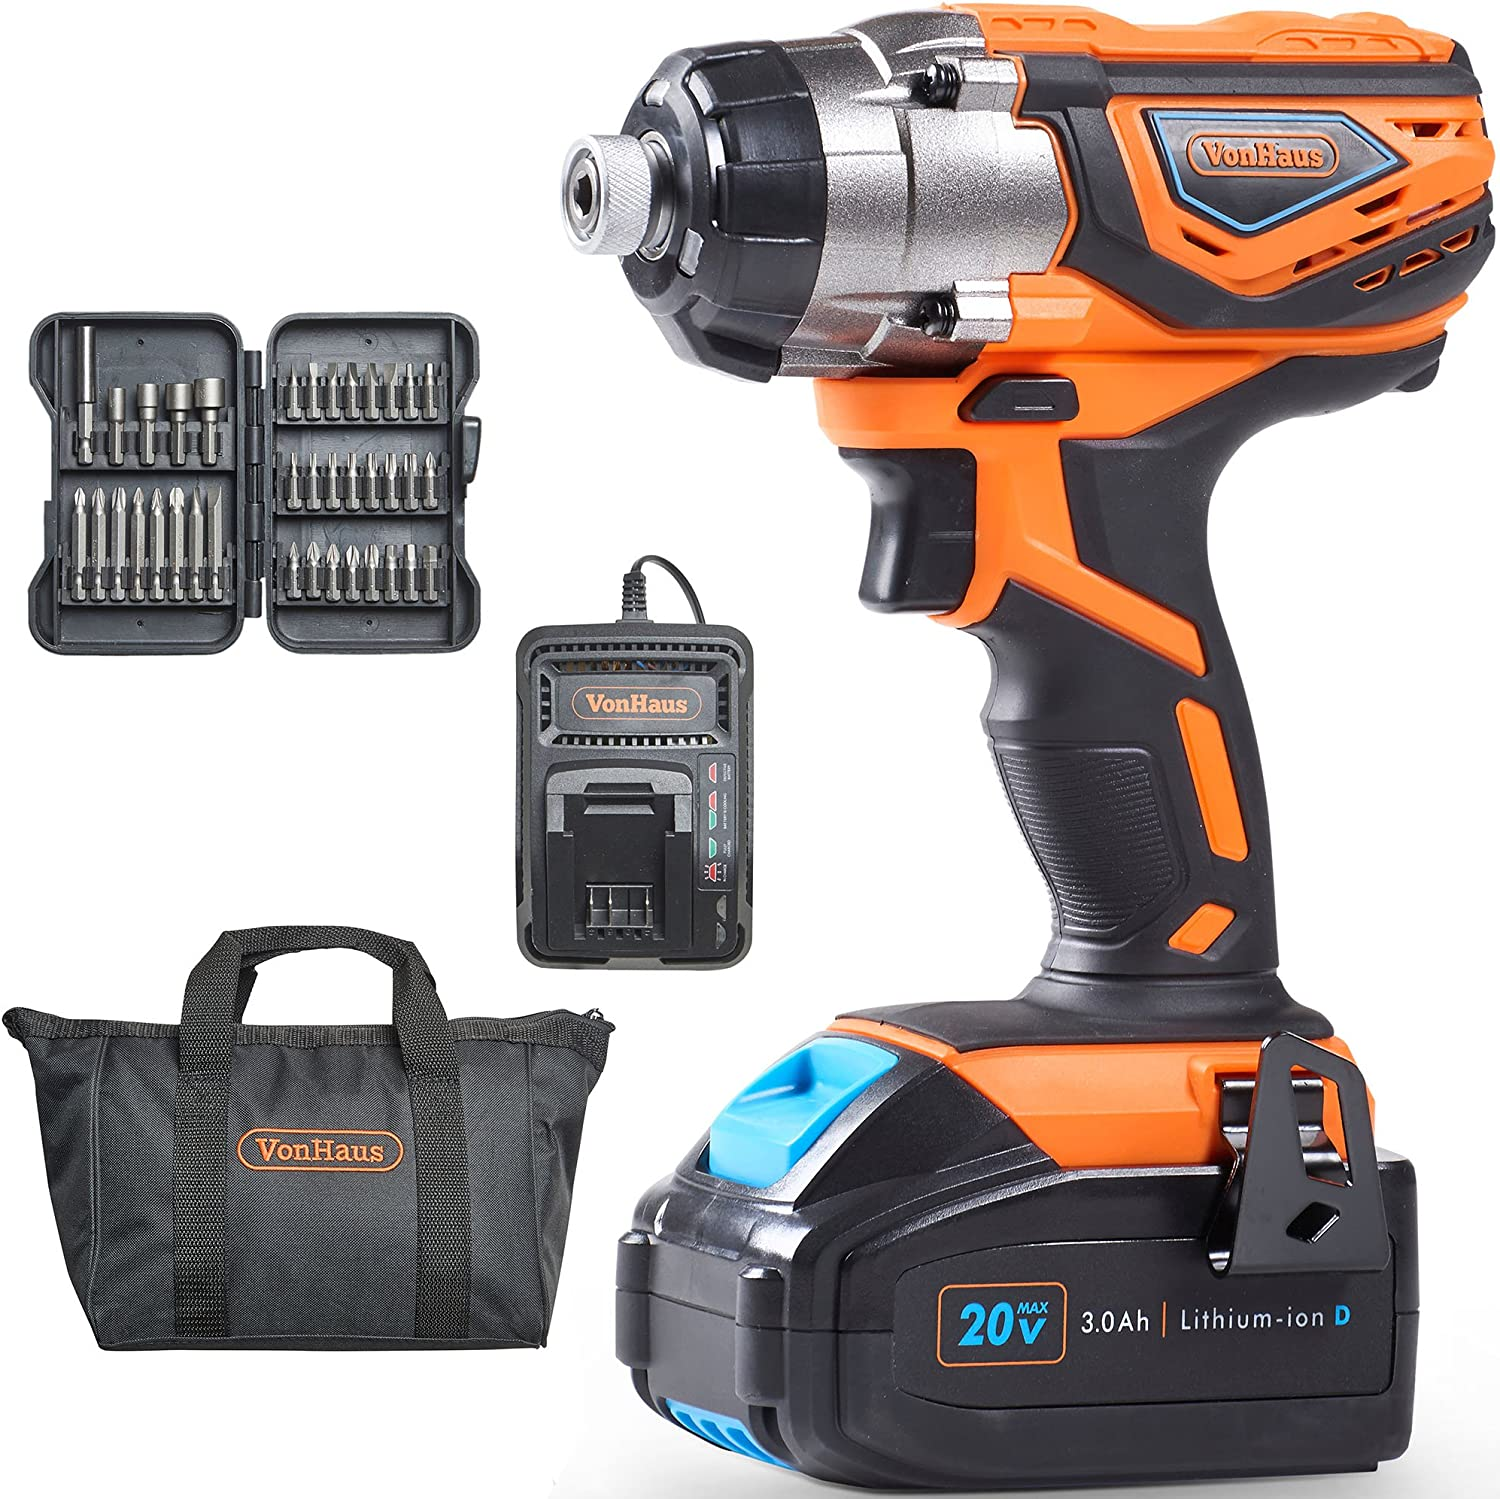 VonHaus 20V Cordless 1 4 Impact Driver Drill Set with 3000 RPM Speed, LED Light and 37pc Driver Bits – 3.0Ah Battery and Charger Kit Included